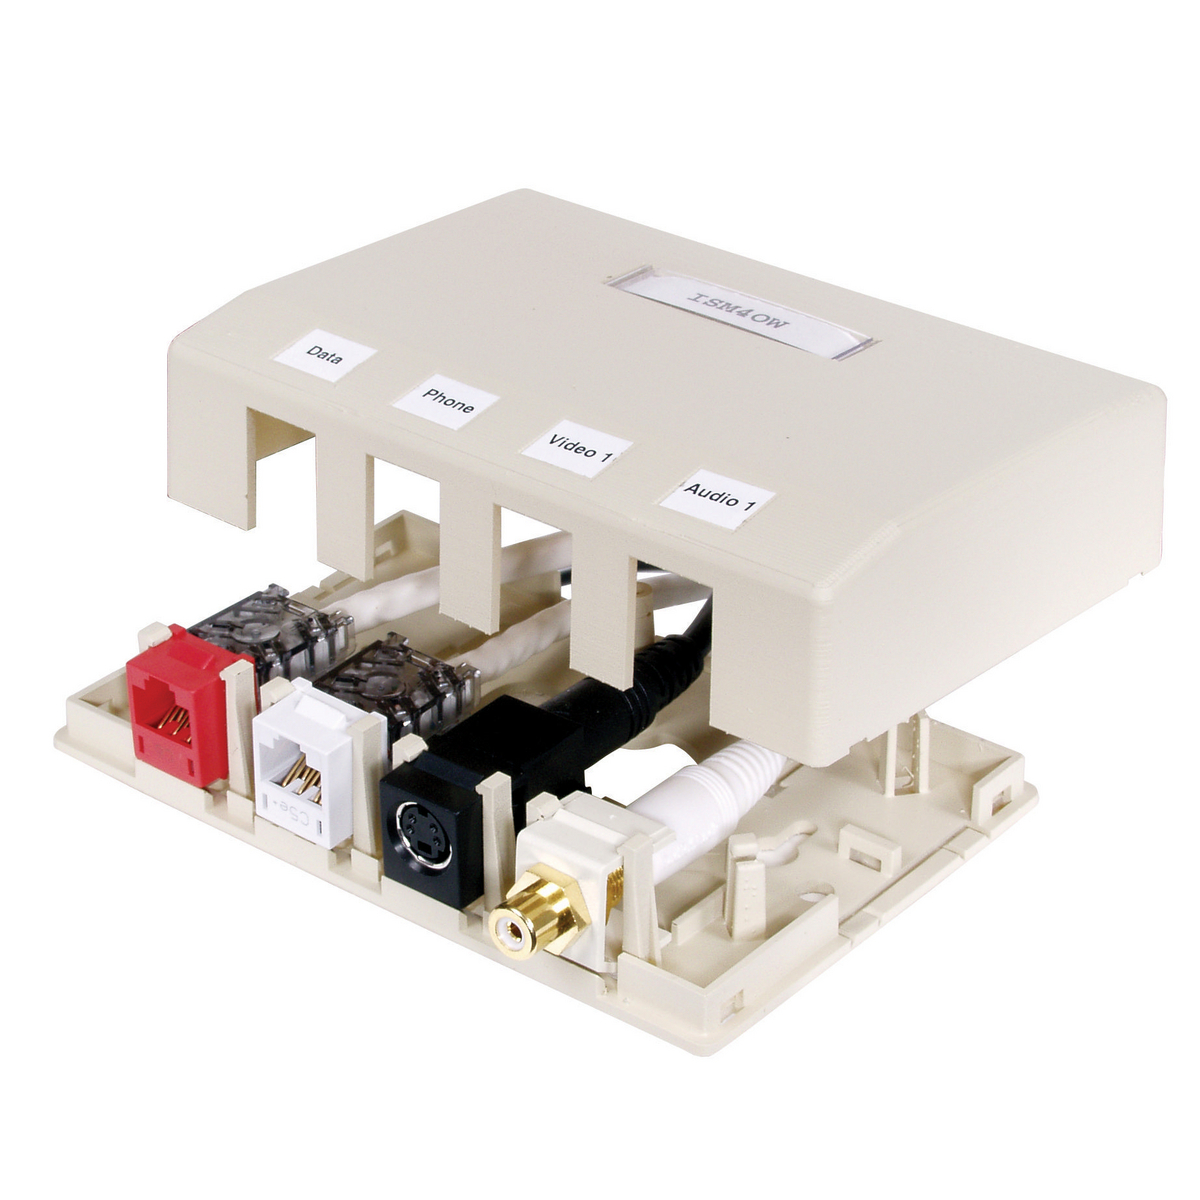 Hubbell ISB4OW 4-Port Office White High Impact Resistant Flame Retardant Polymer Surface Mount Box